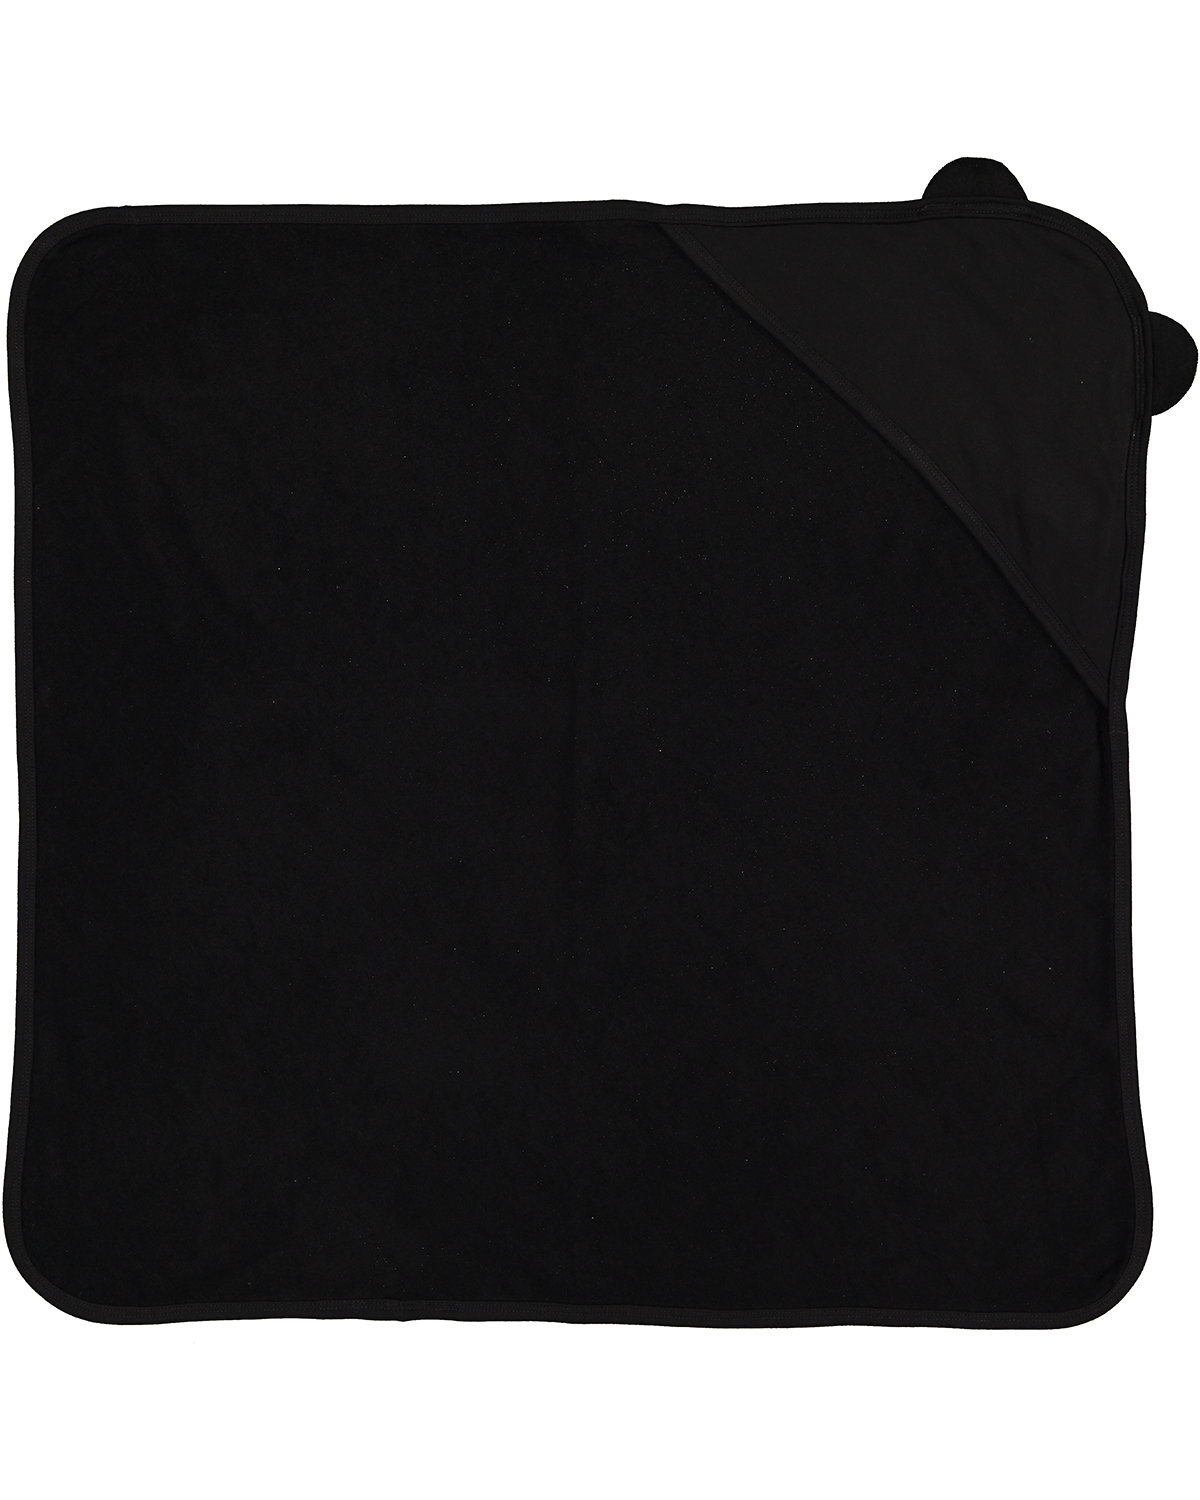 Rabbit Skins Infant Hooded Terry Cloth Towel With Ears BLACK